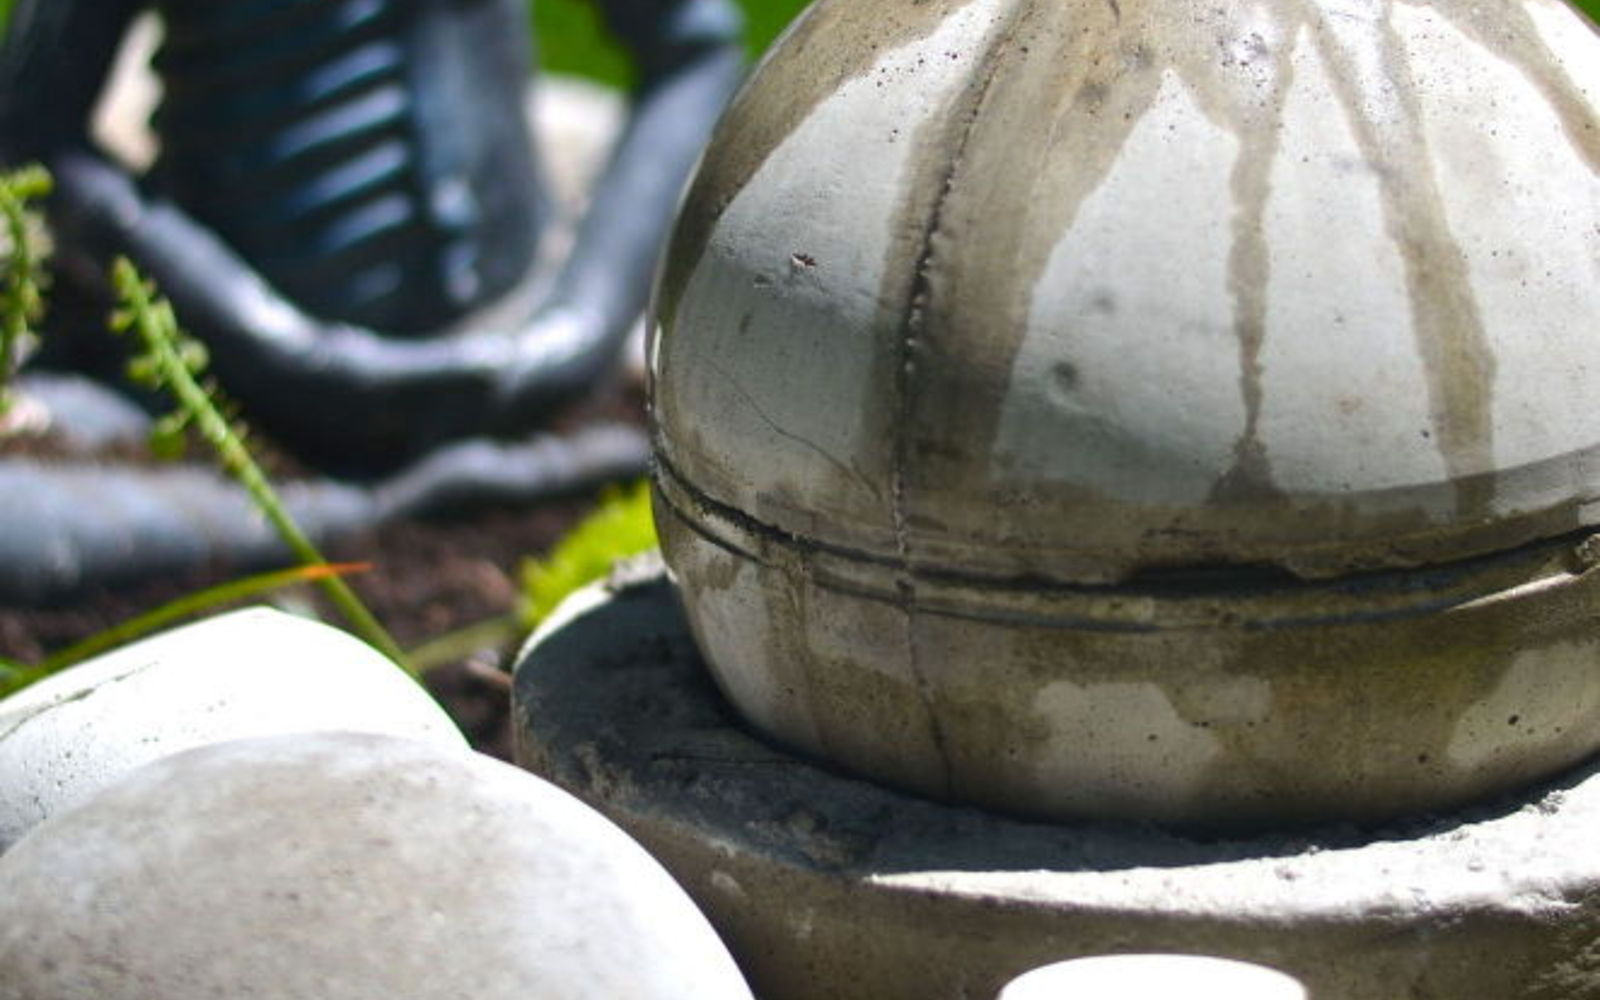 s 10 mini water features to add zen to your garden, outdoor living, ponds water features, Craft a globe shaped bubbling ball